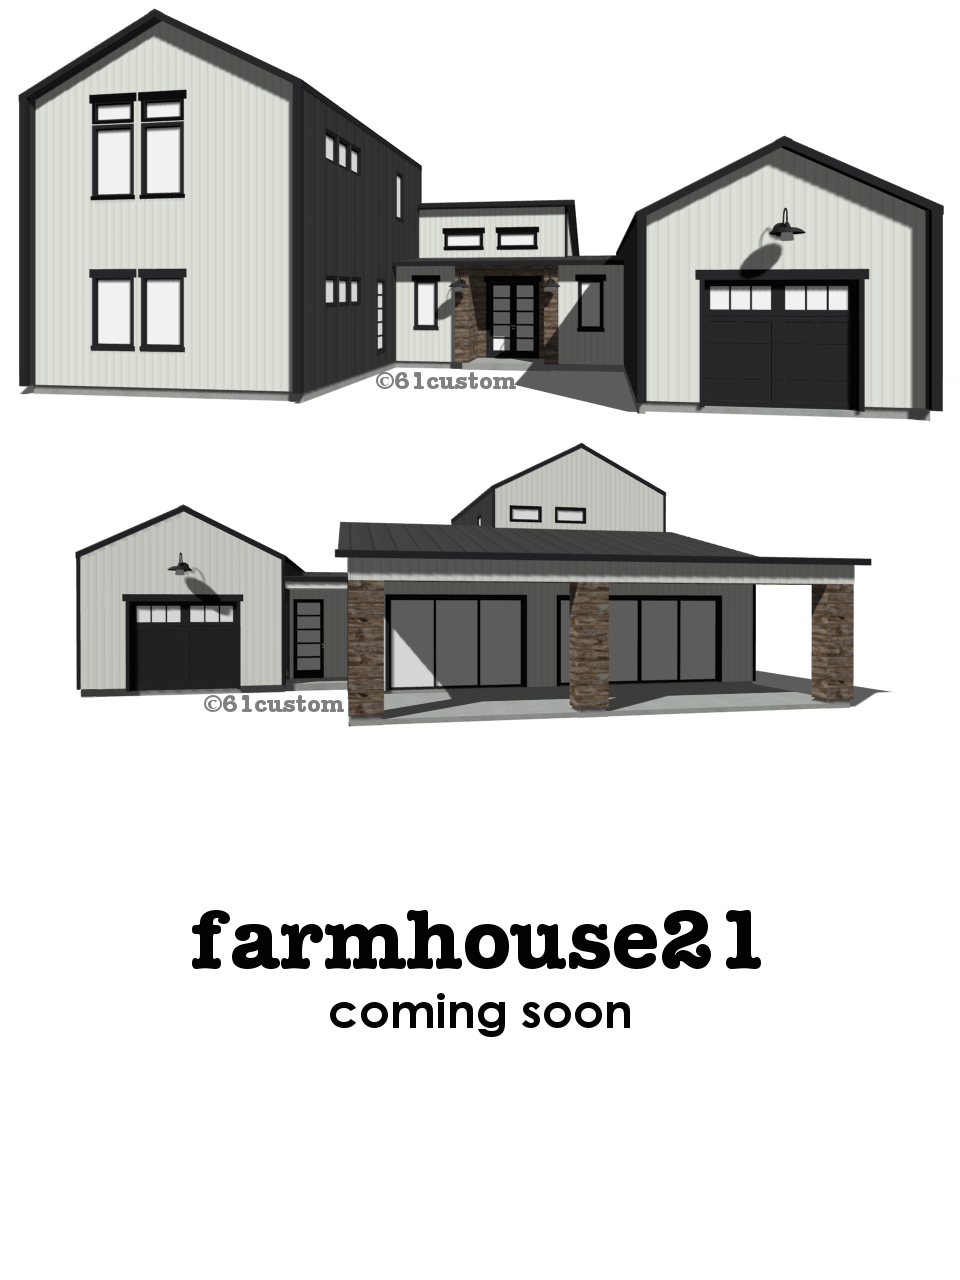 Modern Farmhouse Plans modern house plans, floor plans, contemporary home plans | 61custom